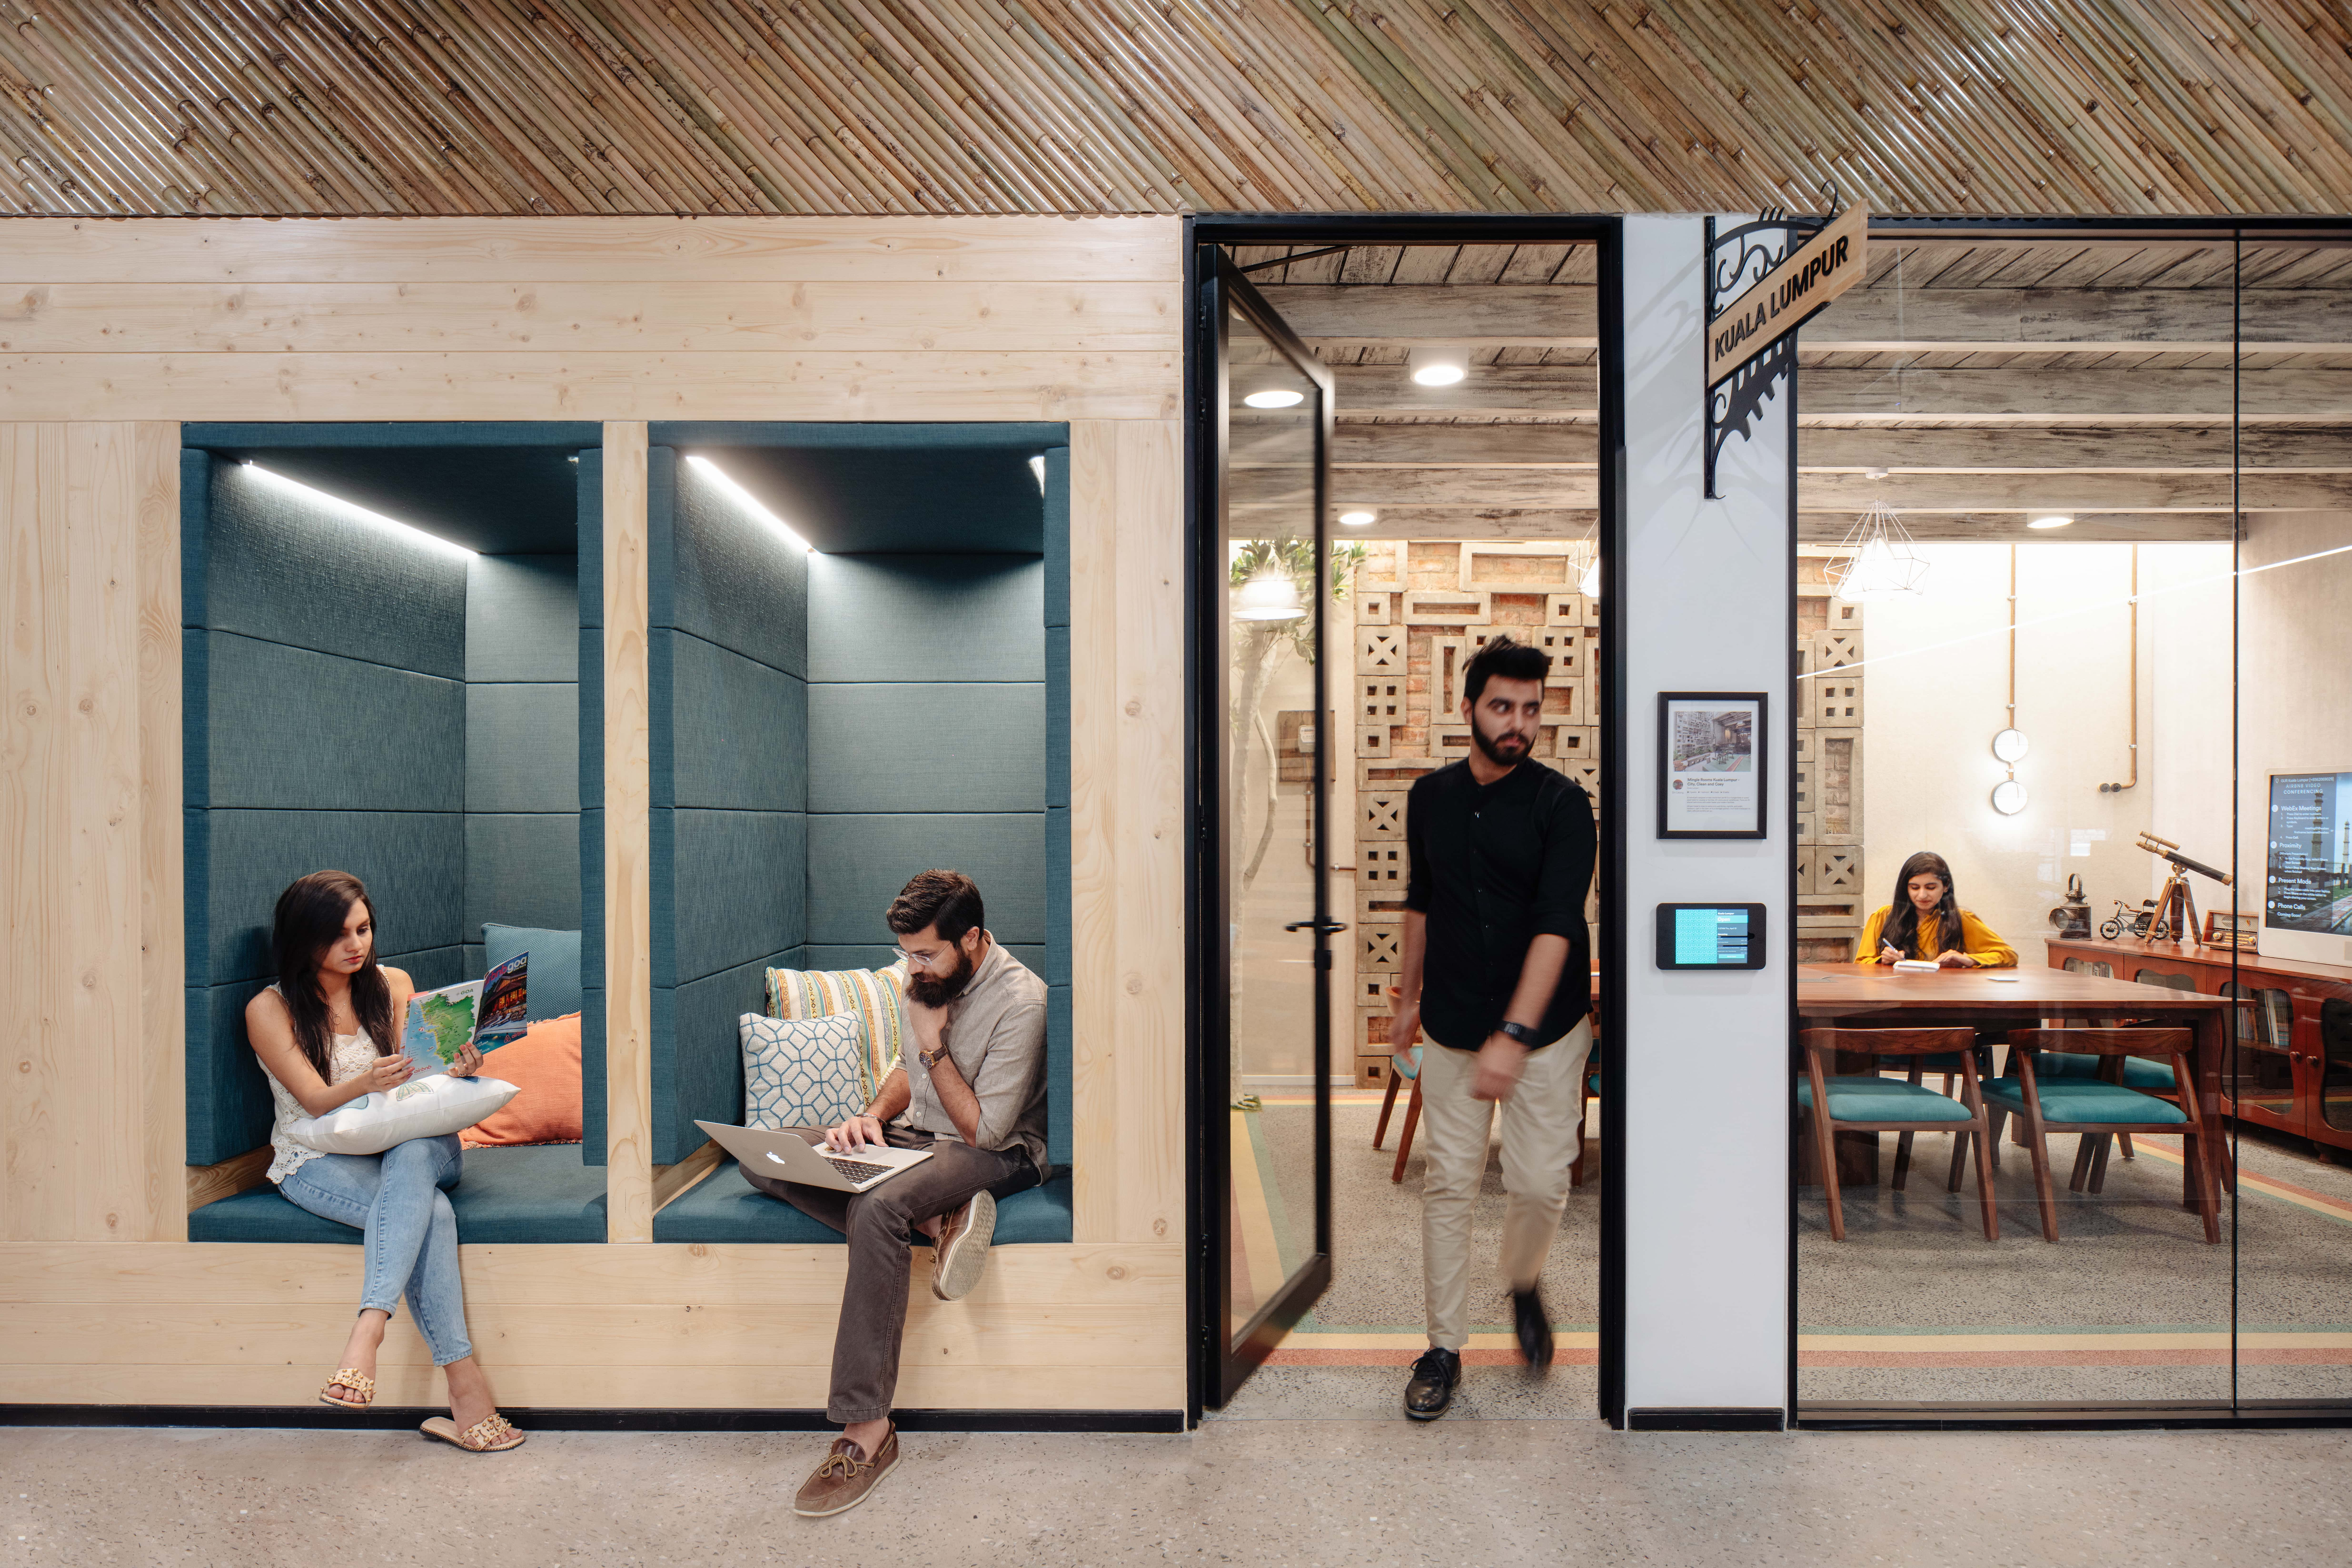 Positivity and wellness should be incorporated into workplace design to bring organisational success